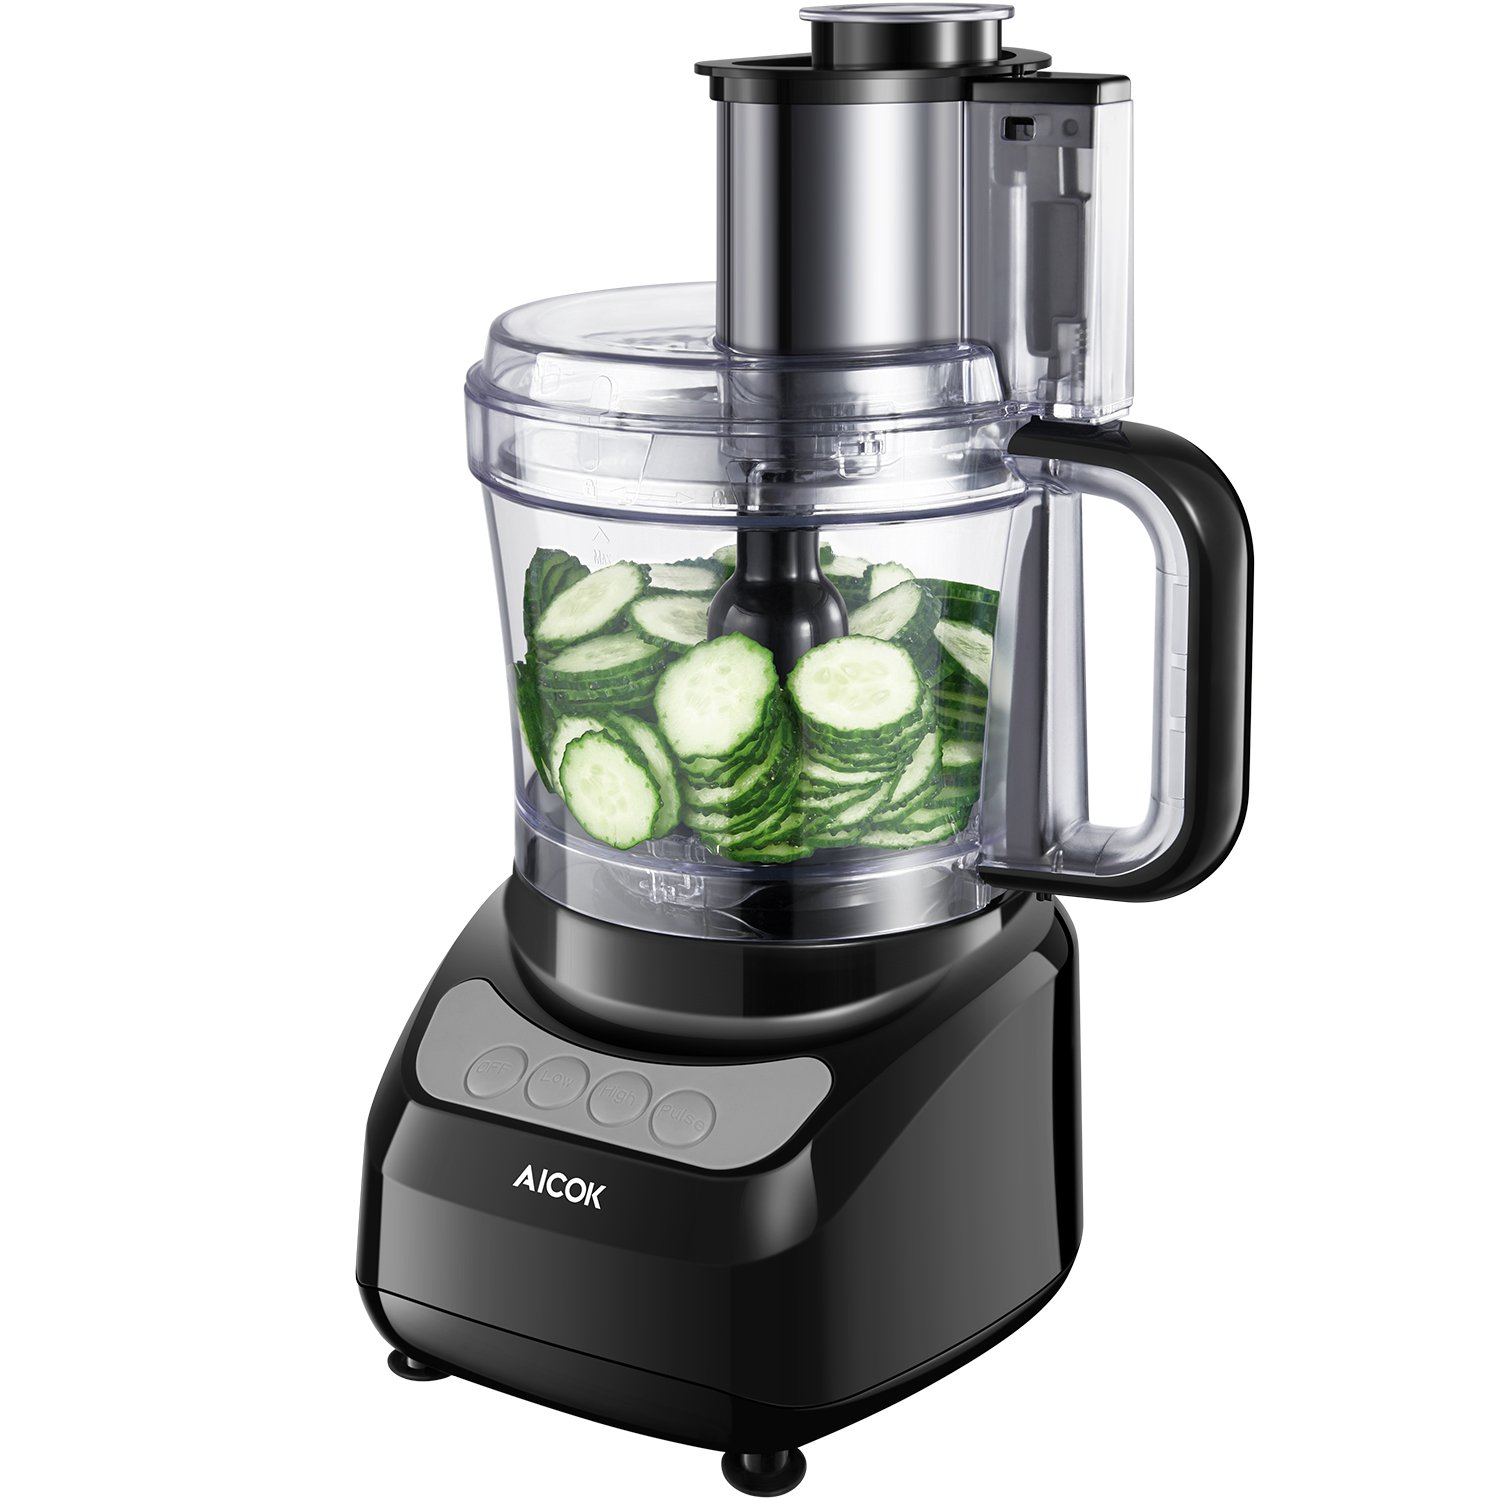 Aicok 12-Cup Food Processor Blender